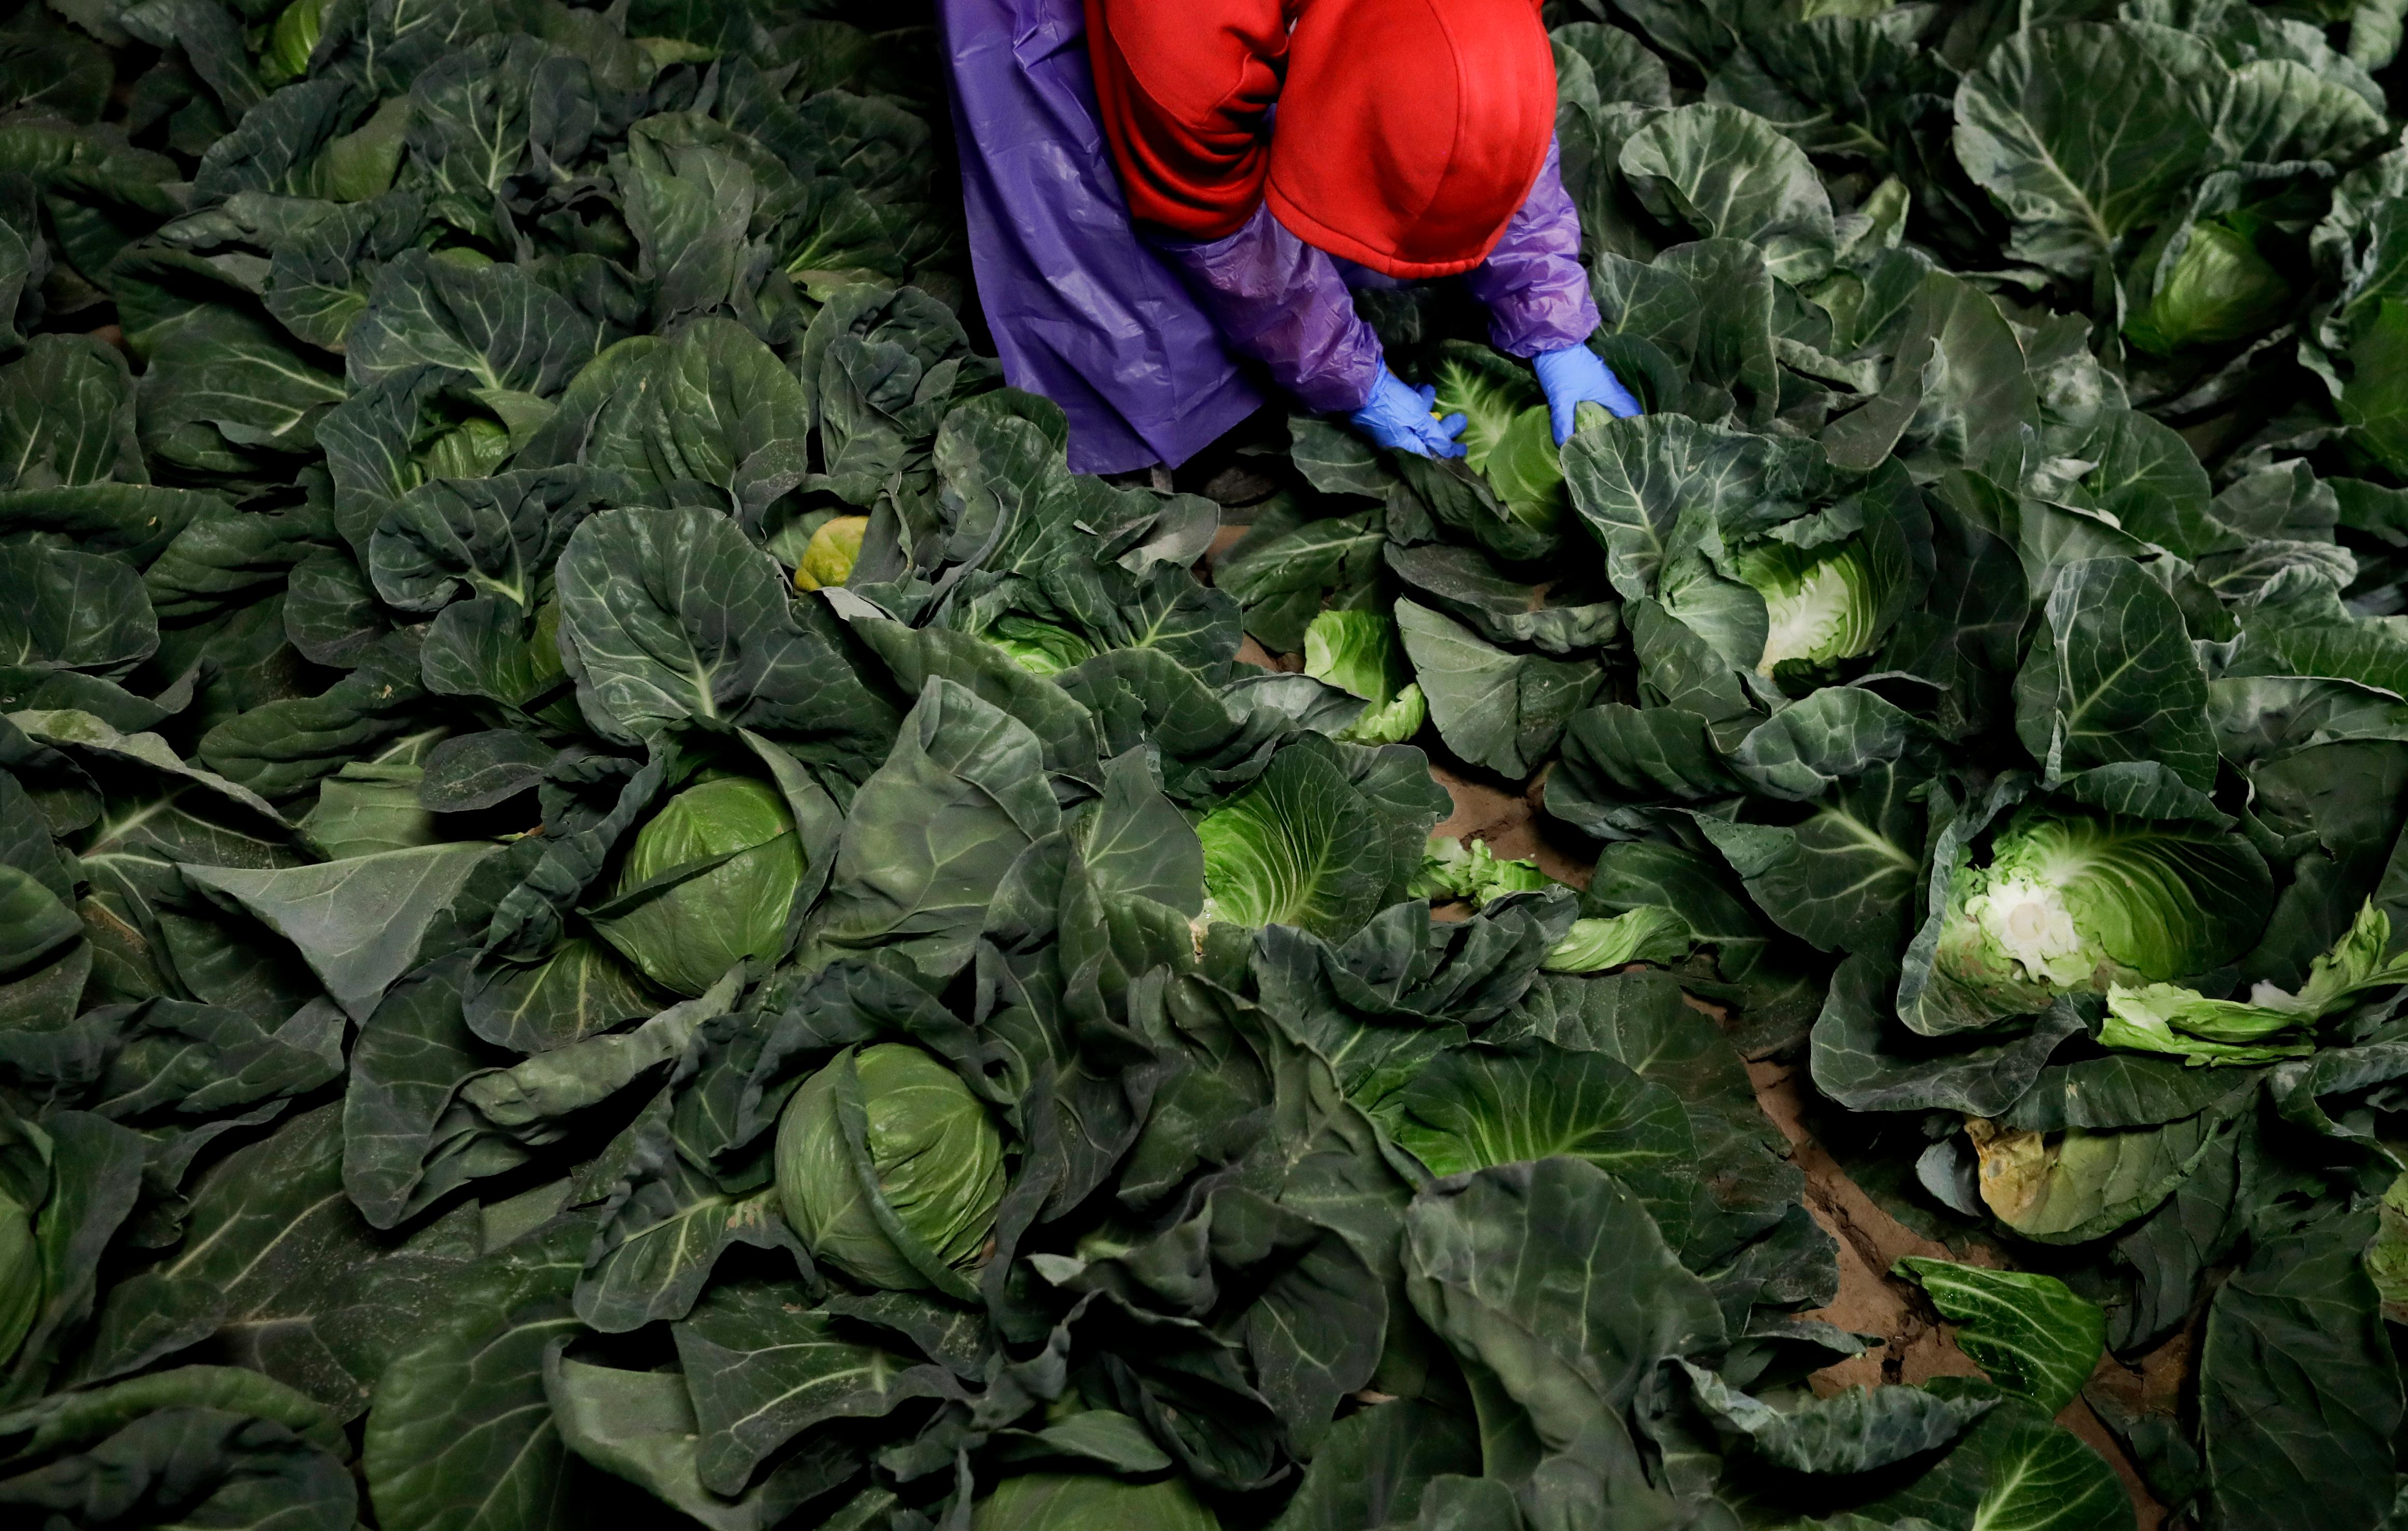 "In this March 6, 2018 photo, farmworker Elias Solis, of Mexicali, Mexico, picks cabbage before dawn in a field outside of Calexico, Calif. For decades, cross-border commuters have picked lettuce, carrots, broccoli, onions, cauliflower and other vegetables that make California's Imperial Valley ""America's Salad Bowl"" from December through March. As Trump visits the border for the first time as president on Tuesday, the harvest is a reminder of how little has changed despite heated rhetoric in Washington. (AP Photo/Gregory Bull)"